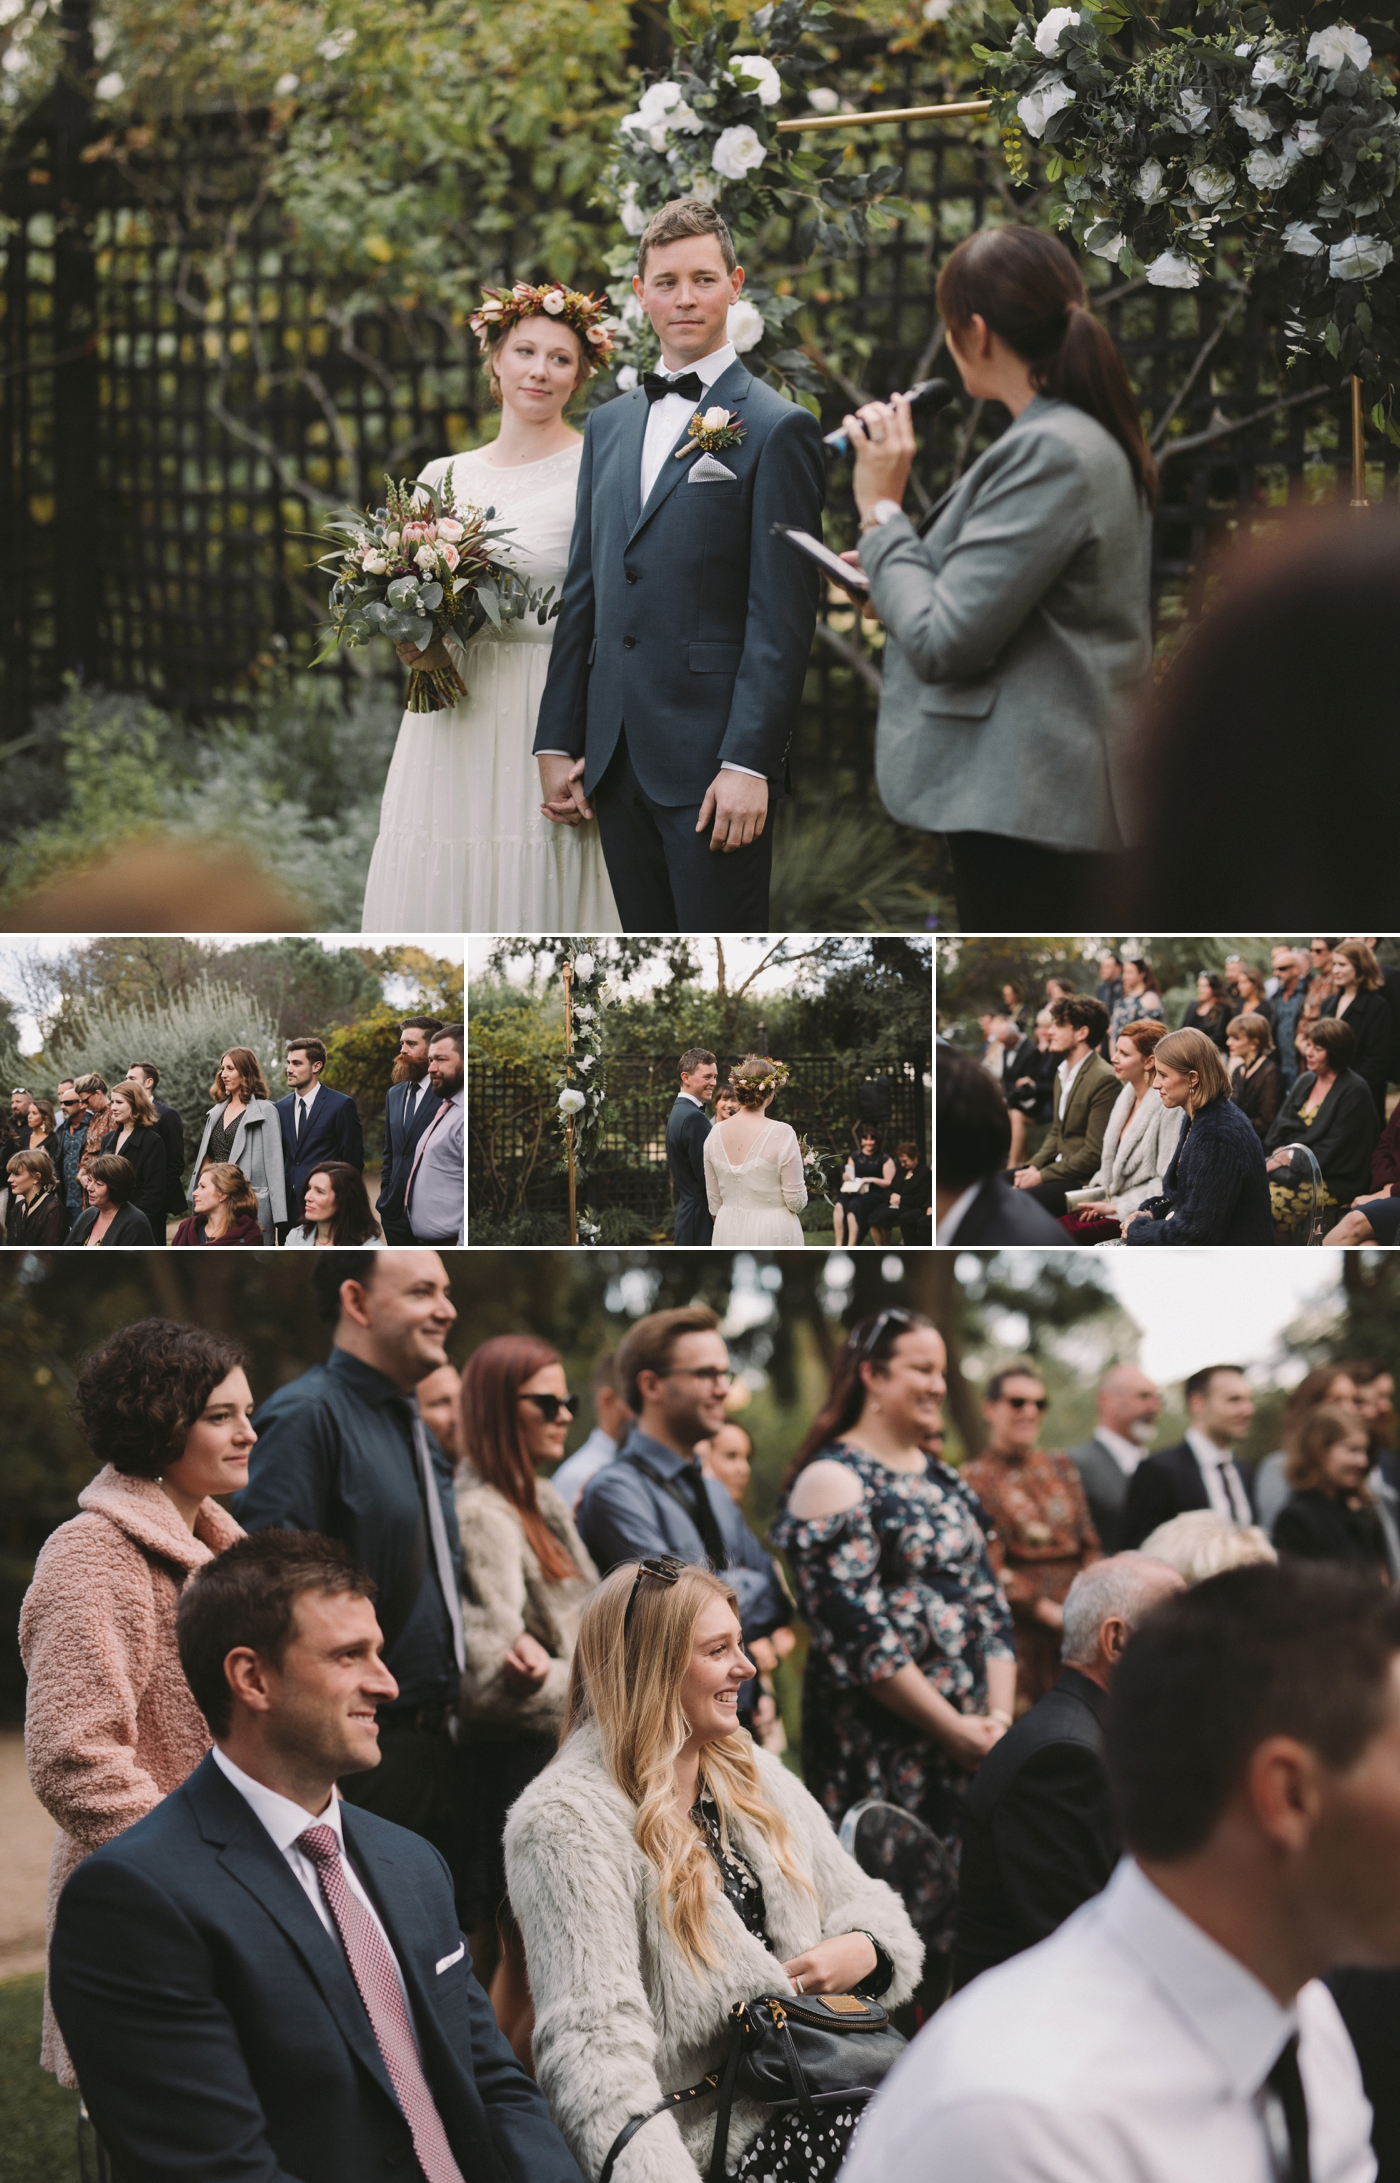 Jo & Aaron - Natural Wedding Photography in Adelaide - Beautiful, modern wedding photographer - Al Ru Farm Wedding Photography - Katherine Schultz_0013.jpg